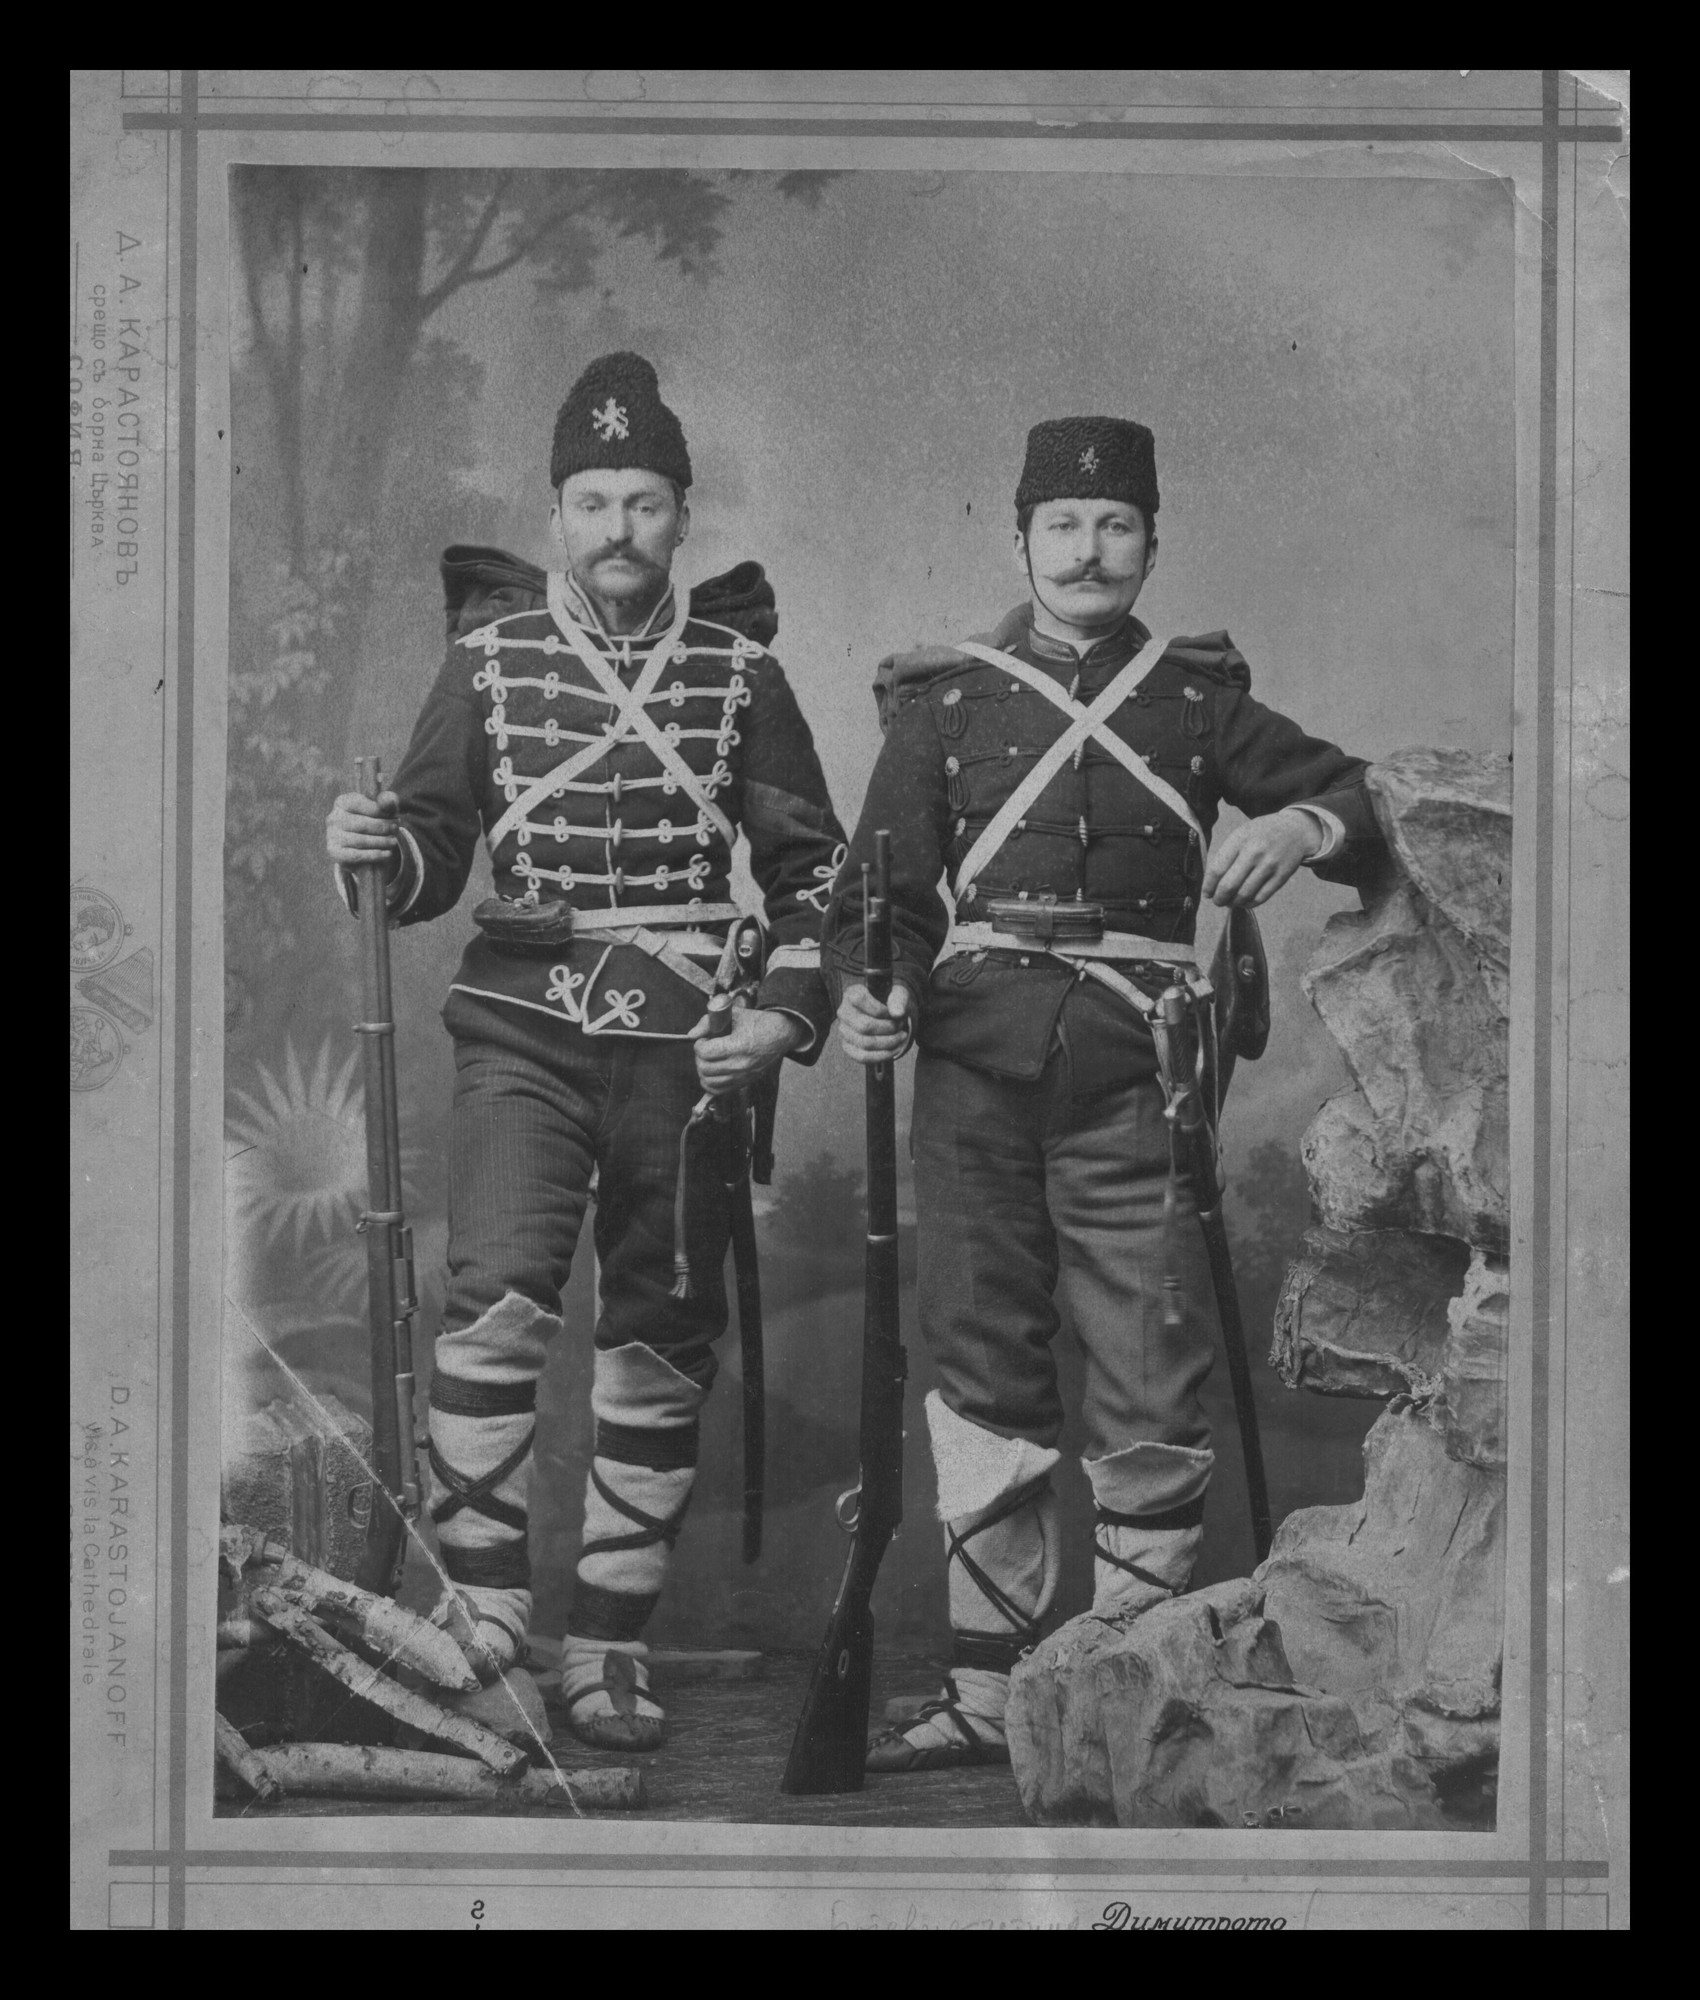 Studio portrait of revolutionaries belonging to Hristo Botev's armed company (cheta), © National Museum of Military History Sofia